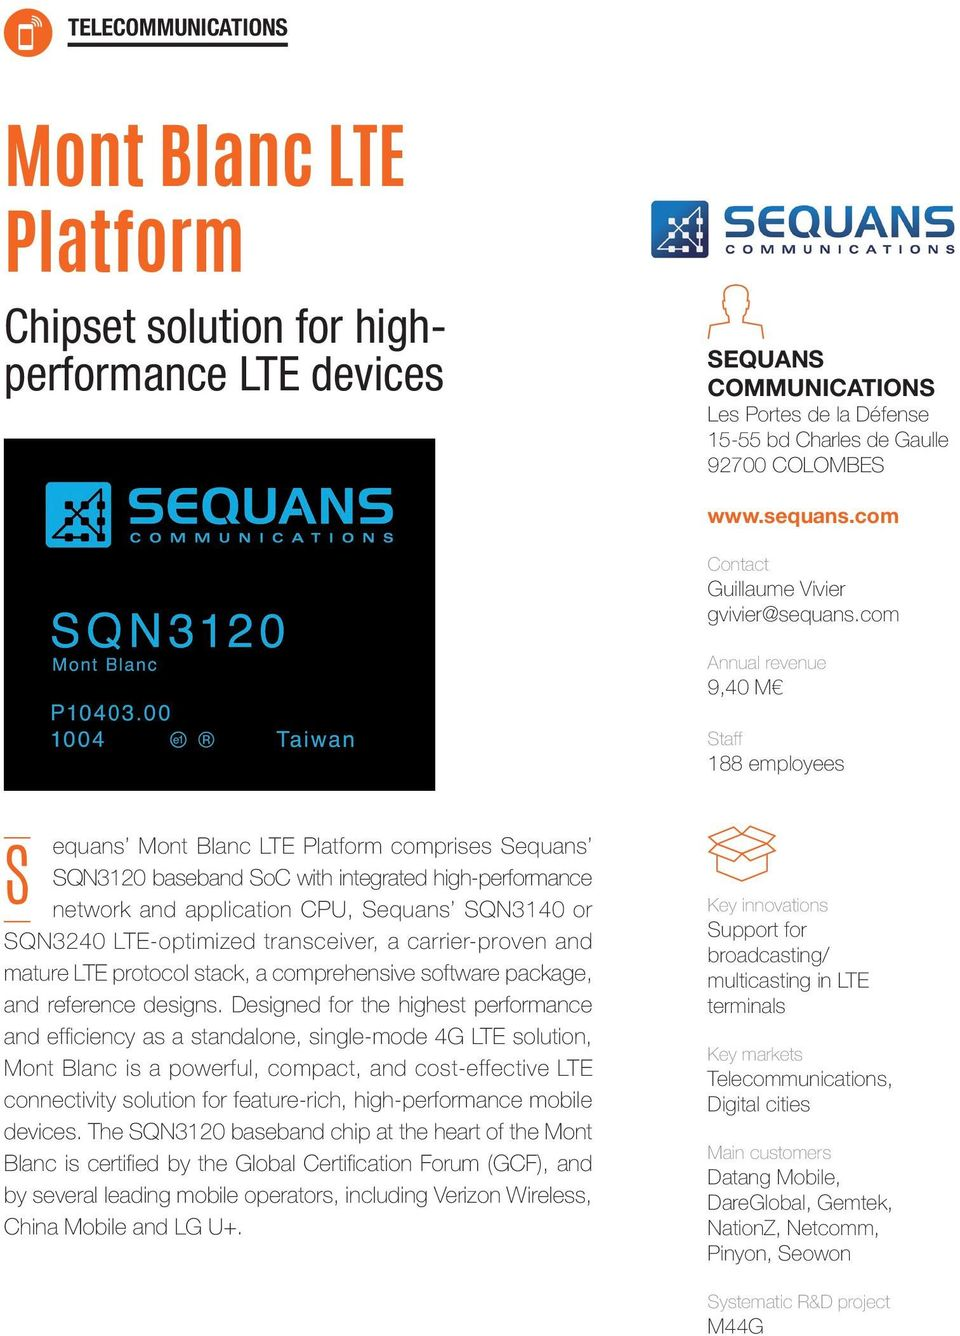 com 9,40 M 188 employees S equans Mont Blanc LTE Platform comprises Sequans SQN3120 baseband SoC with integrated high-performance network and application CPU, Sequans SQN3140 or SQN3240 LTE-optimized